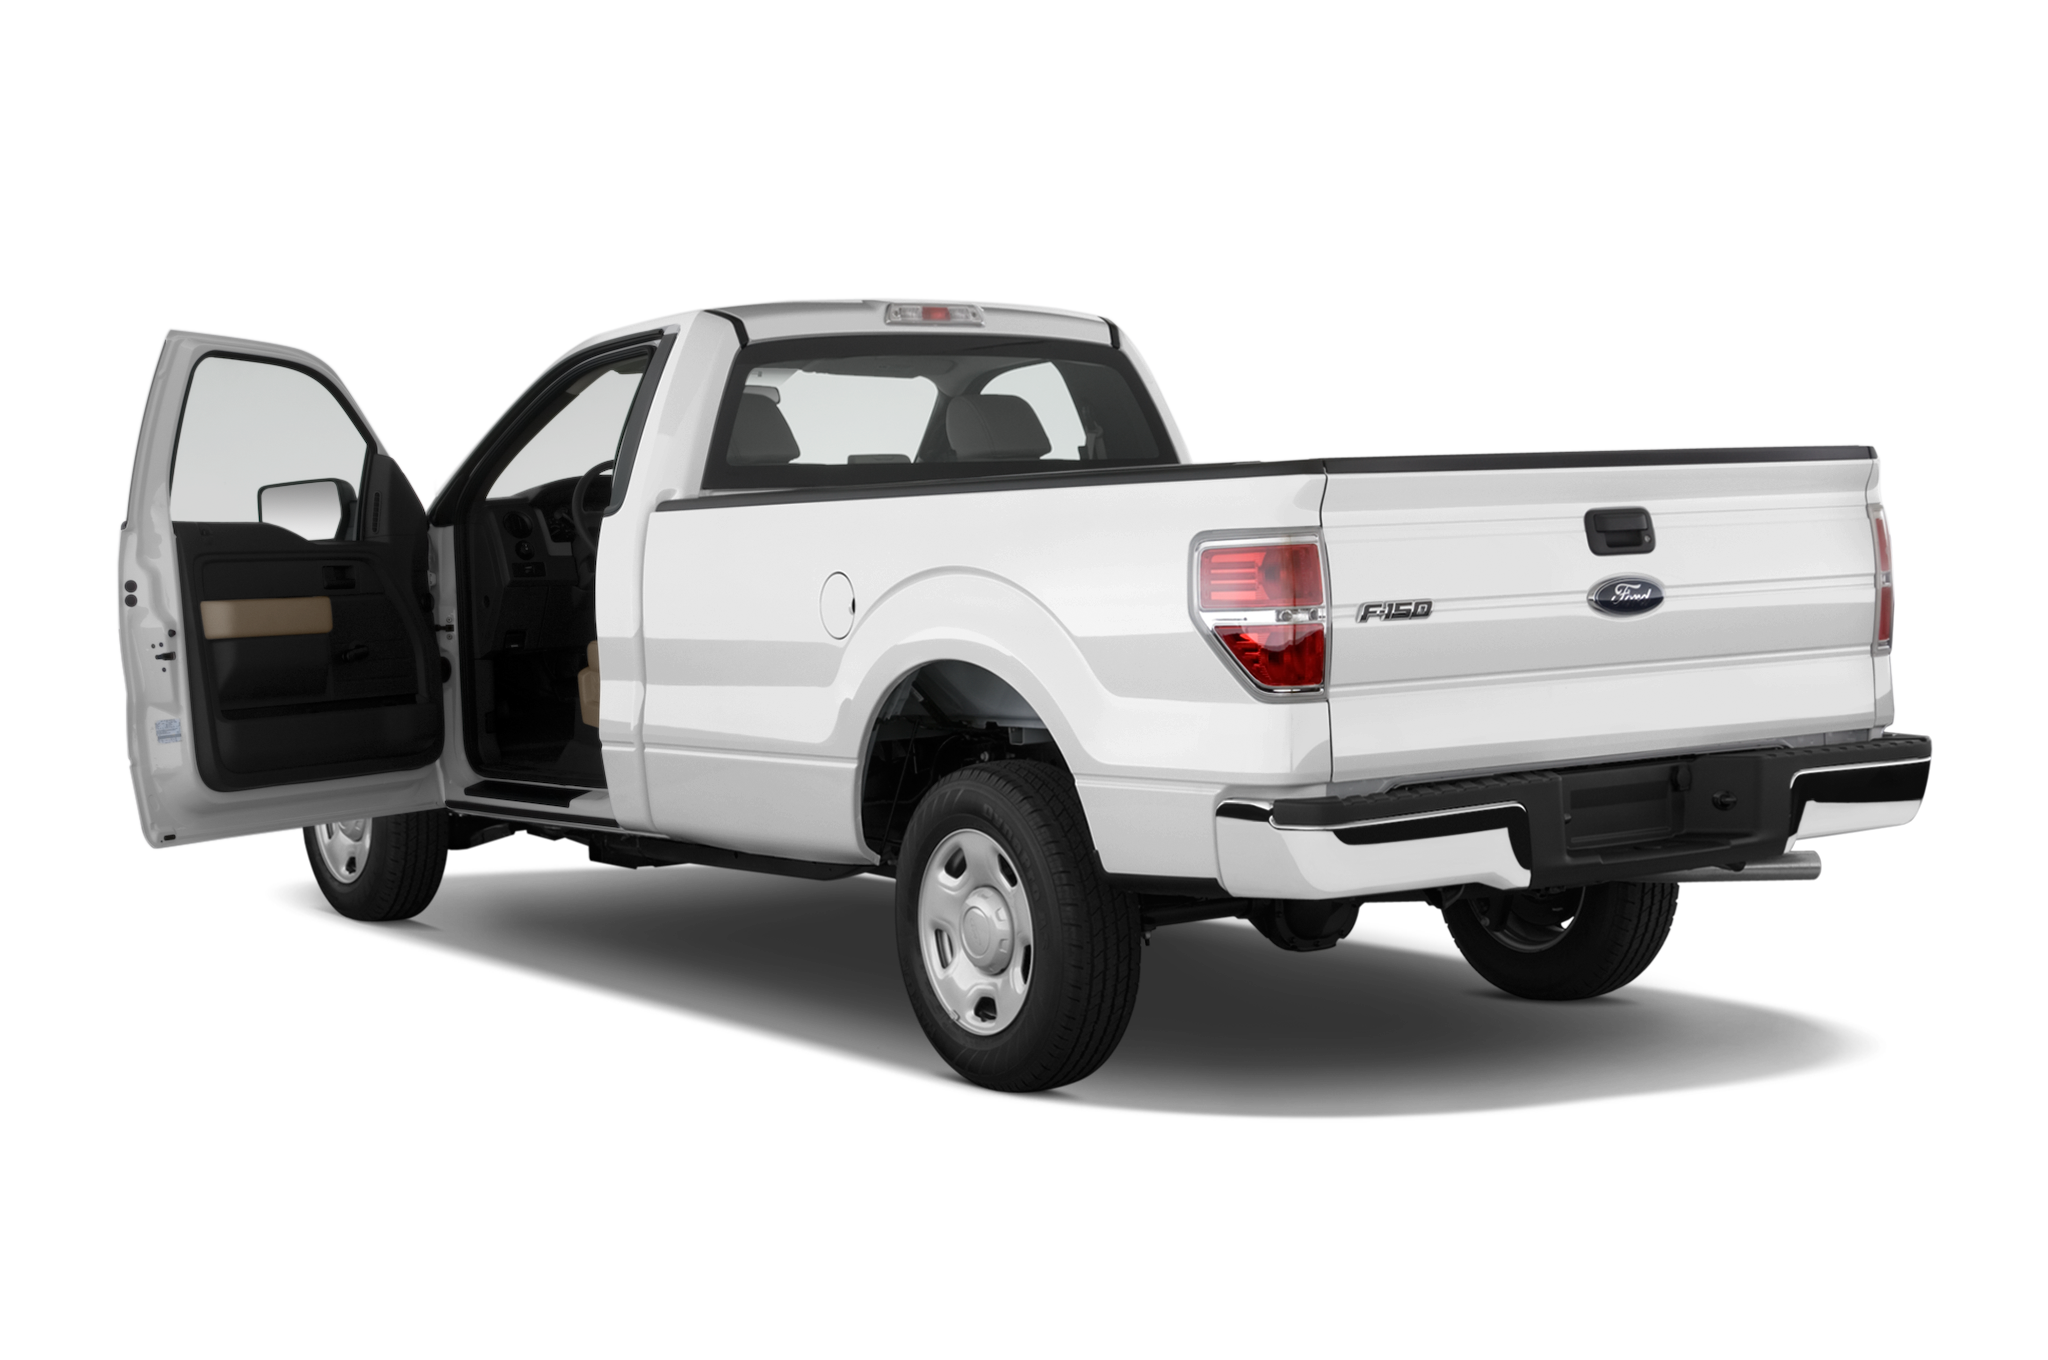 Dodge Ram 1500 Vs Ford F 150 Towing Capacity Sae Towing